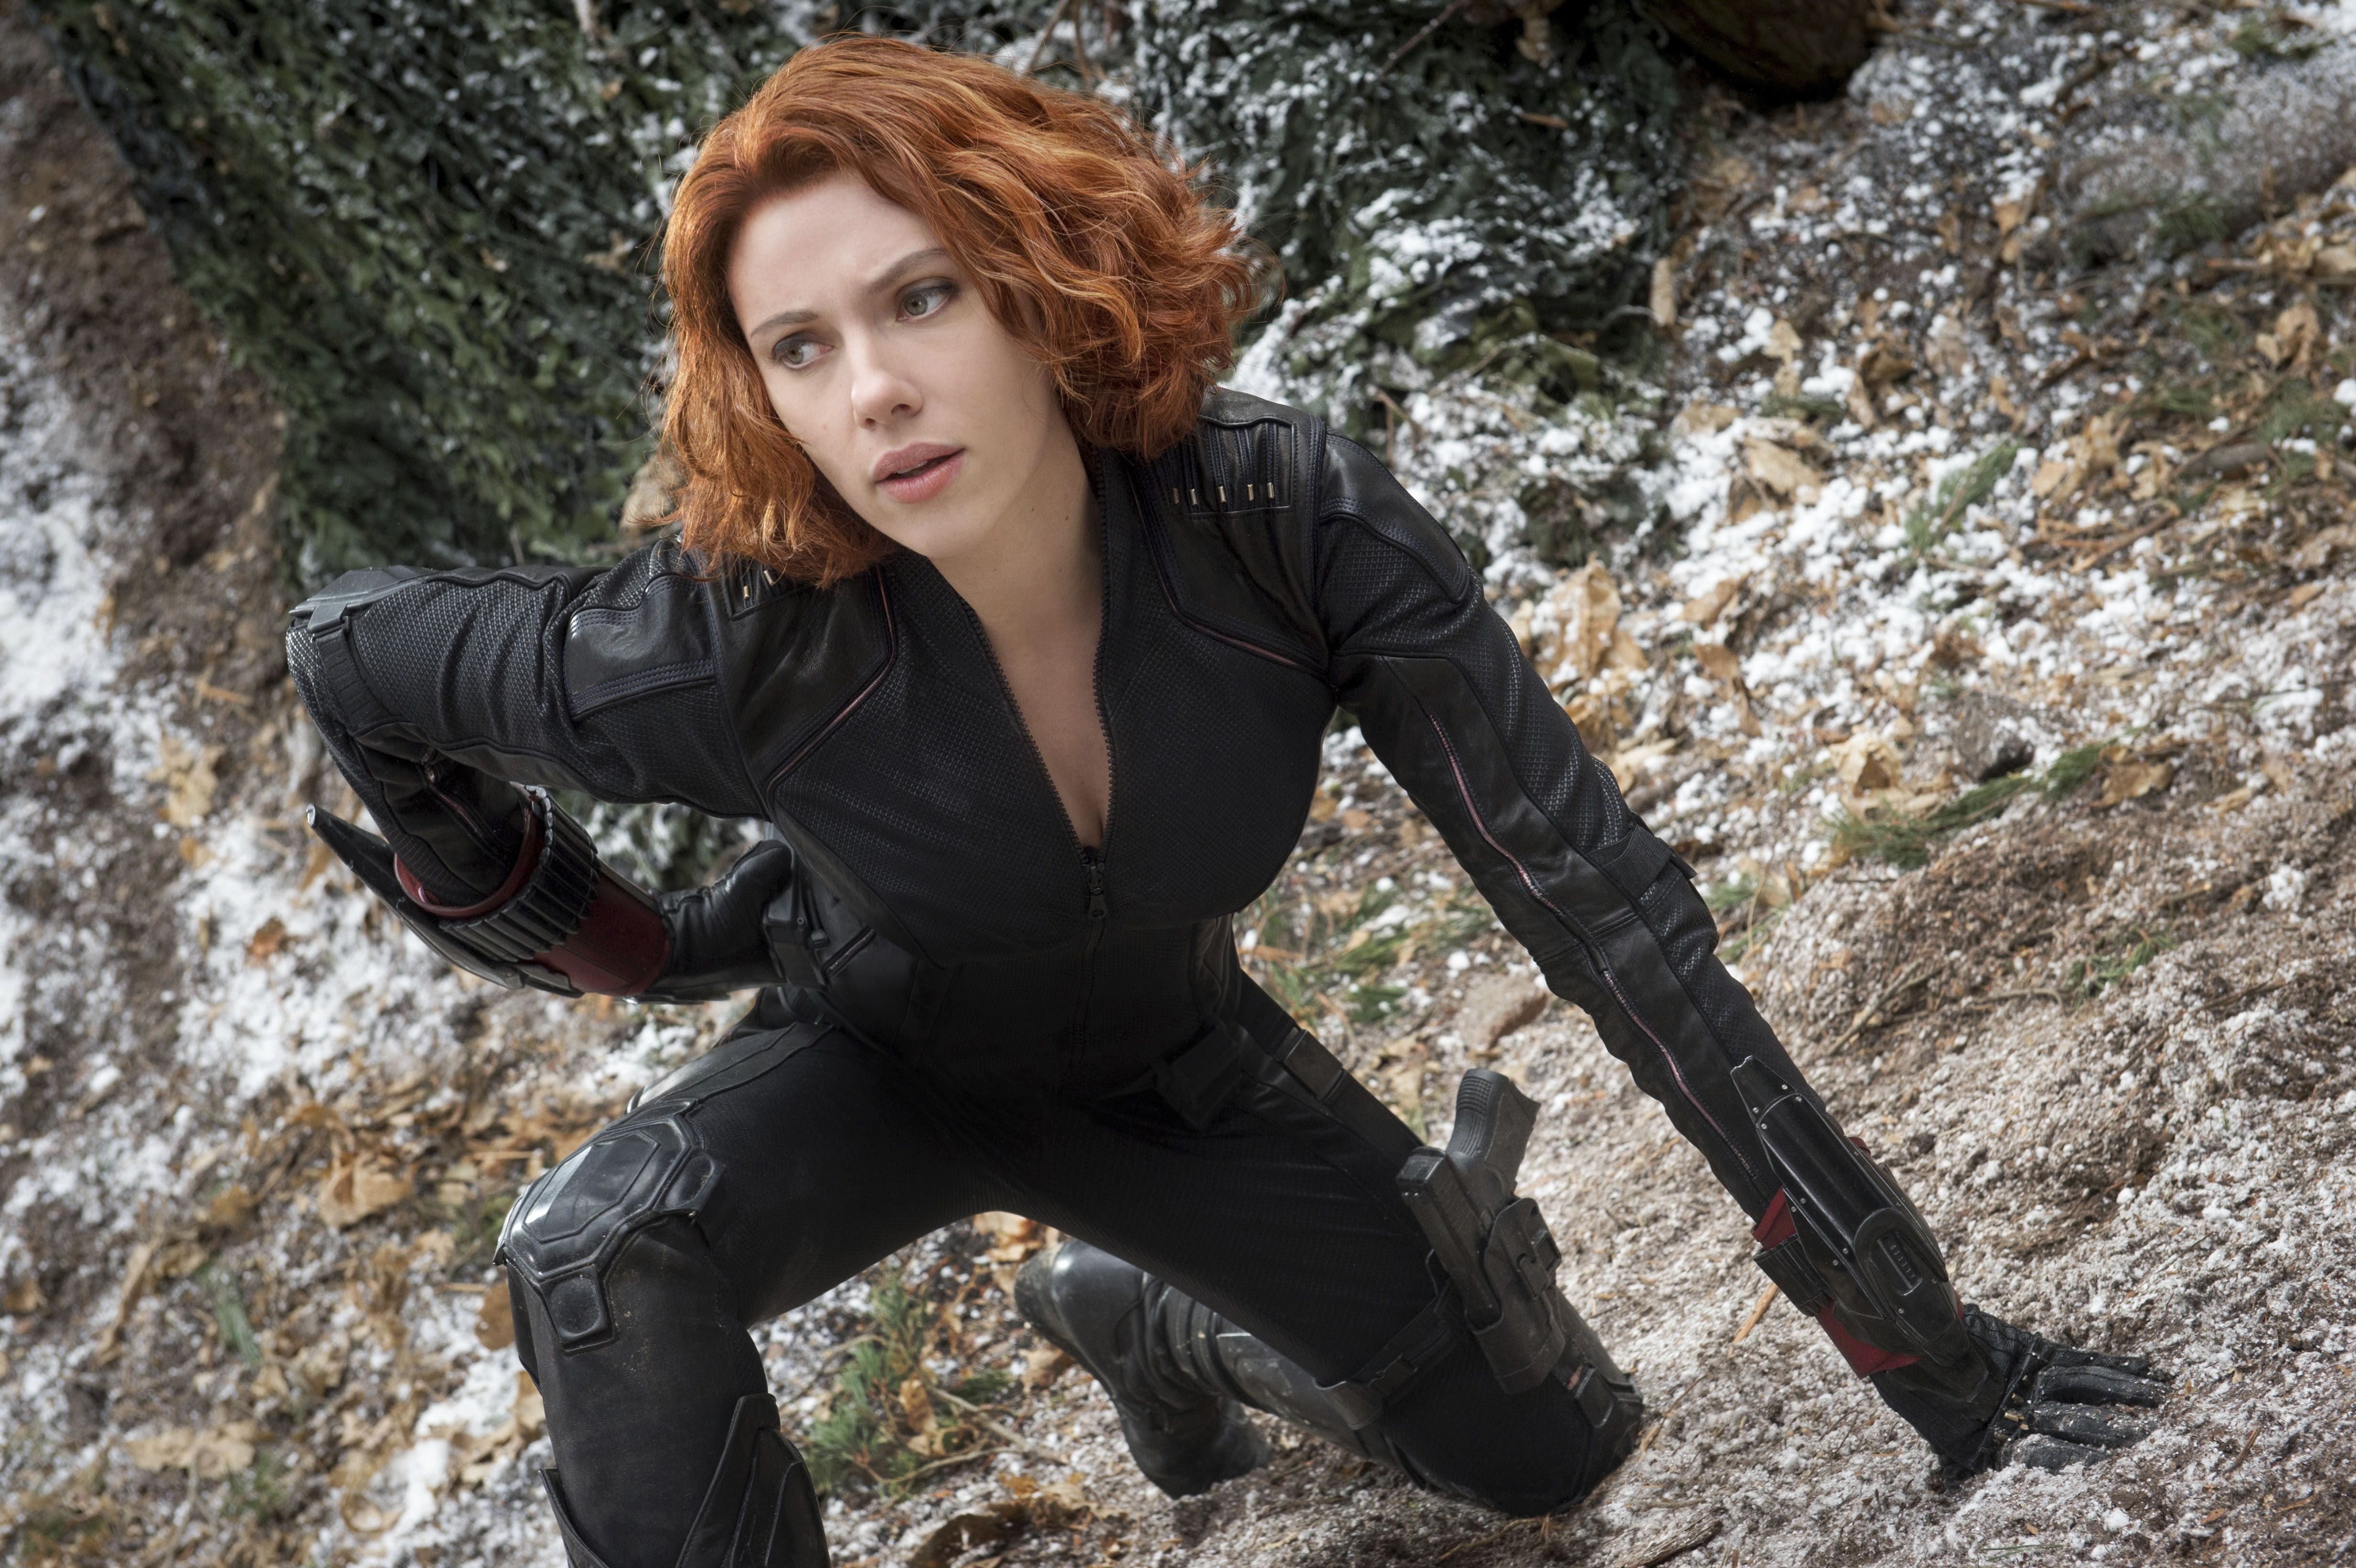 Marvel's Black Widow Movie Will Reject the 'Discriminatory' Comics—Trolls Be Damned